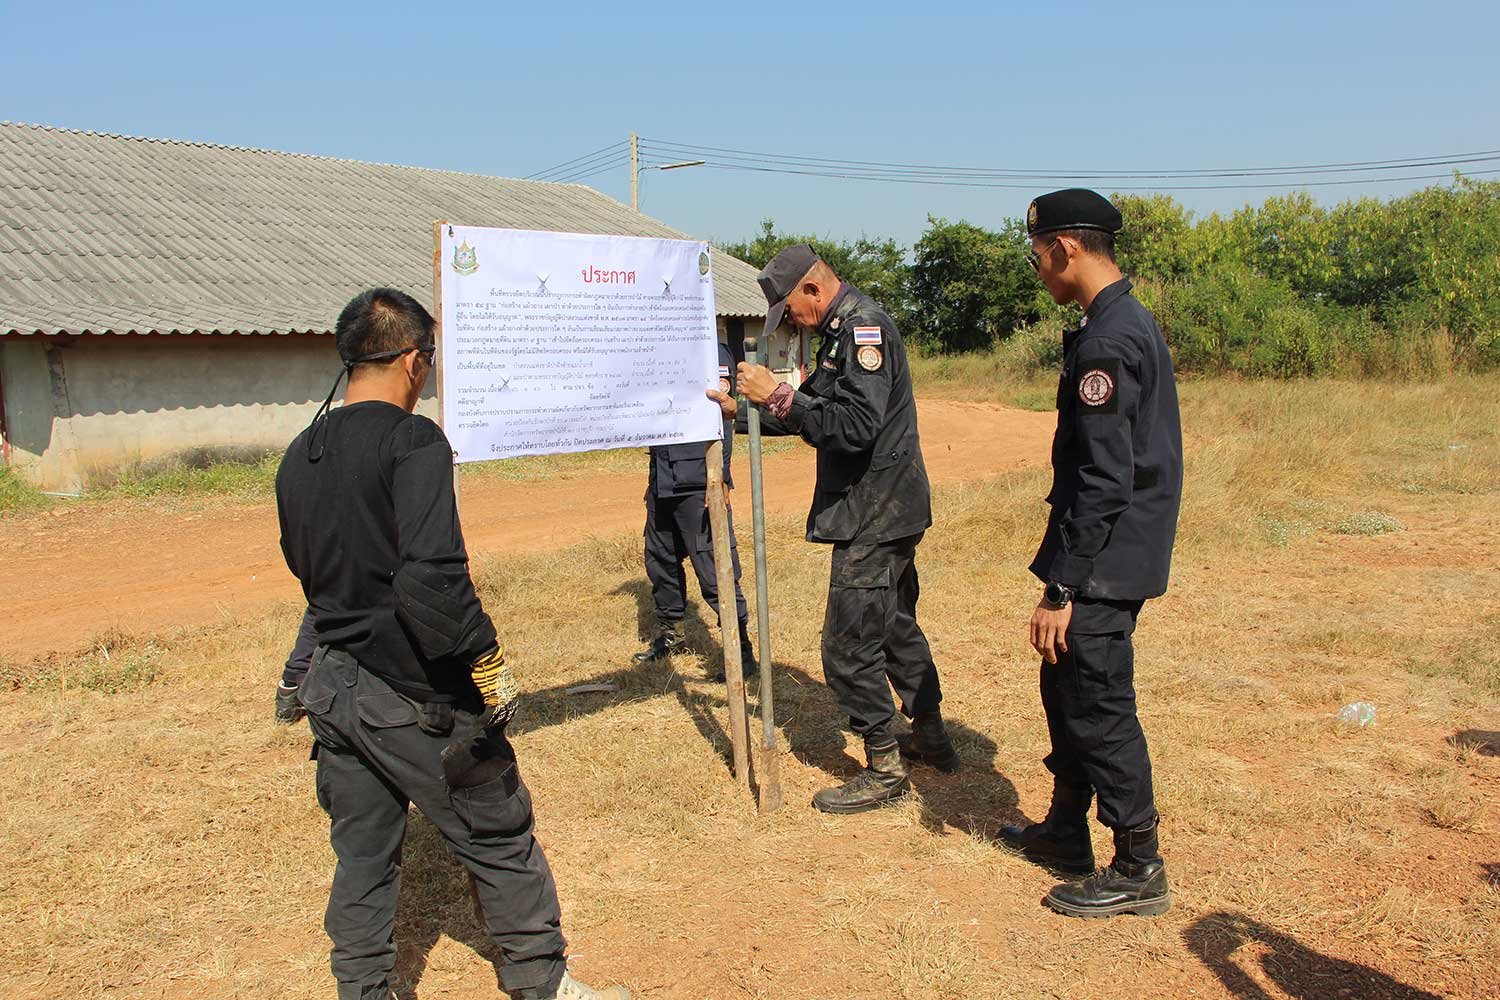 Forestry officials put up a noitce on a chicken farm run by coalition Palang Pracharath Party MP Pareena Kraikupt for encroaching on 46 rai of forest areas in Chom Bung district, Ratchaburi province. (Photo by Saichon Srinuanchan)